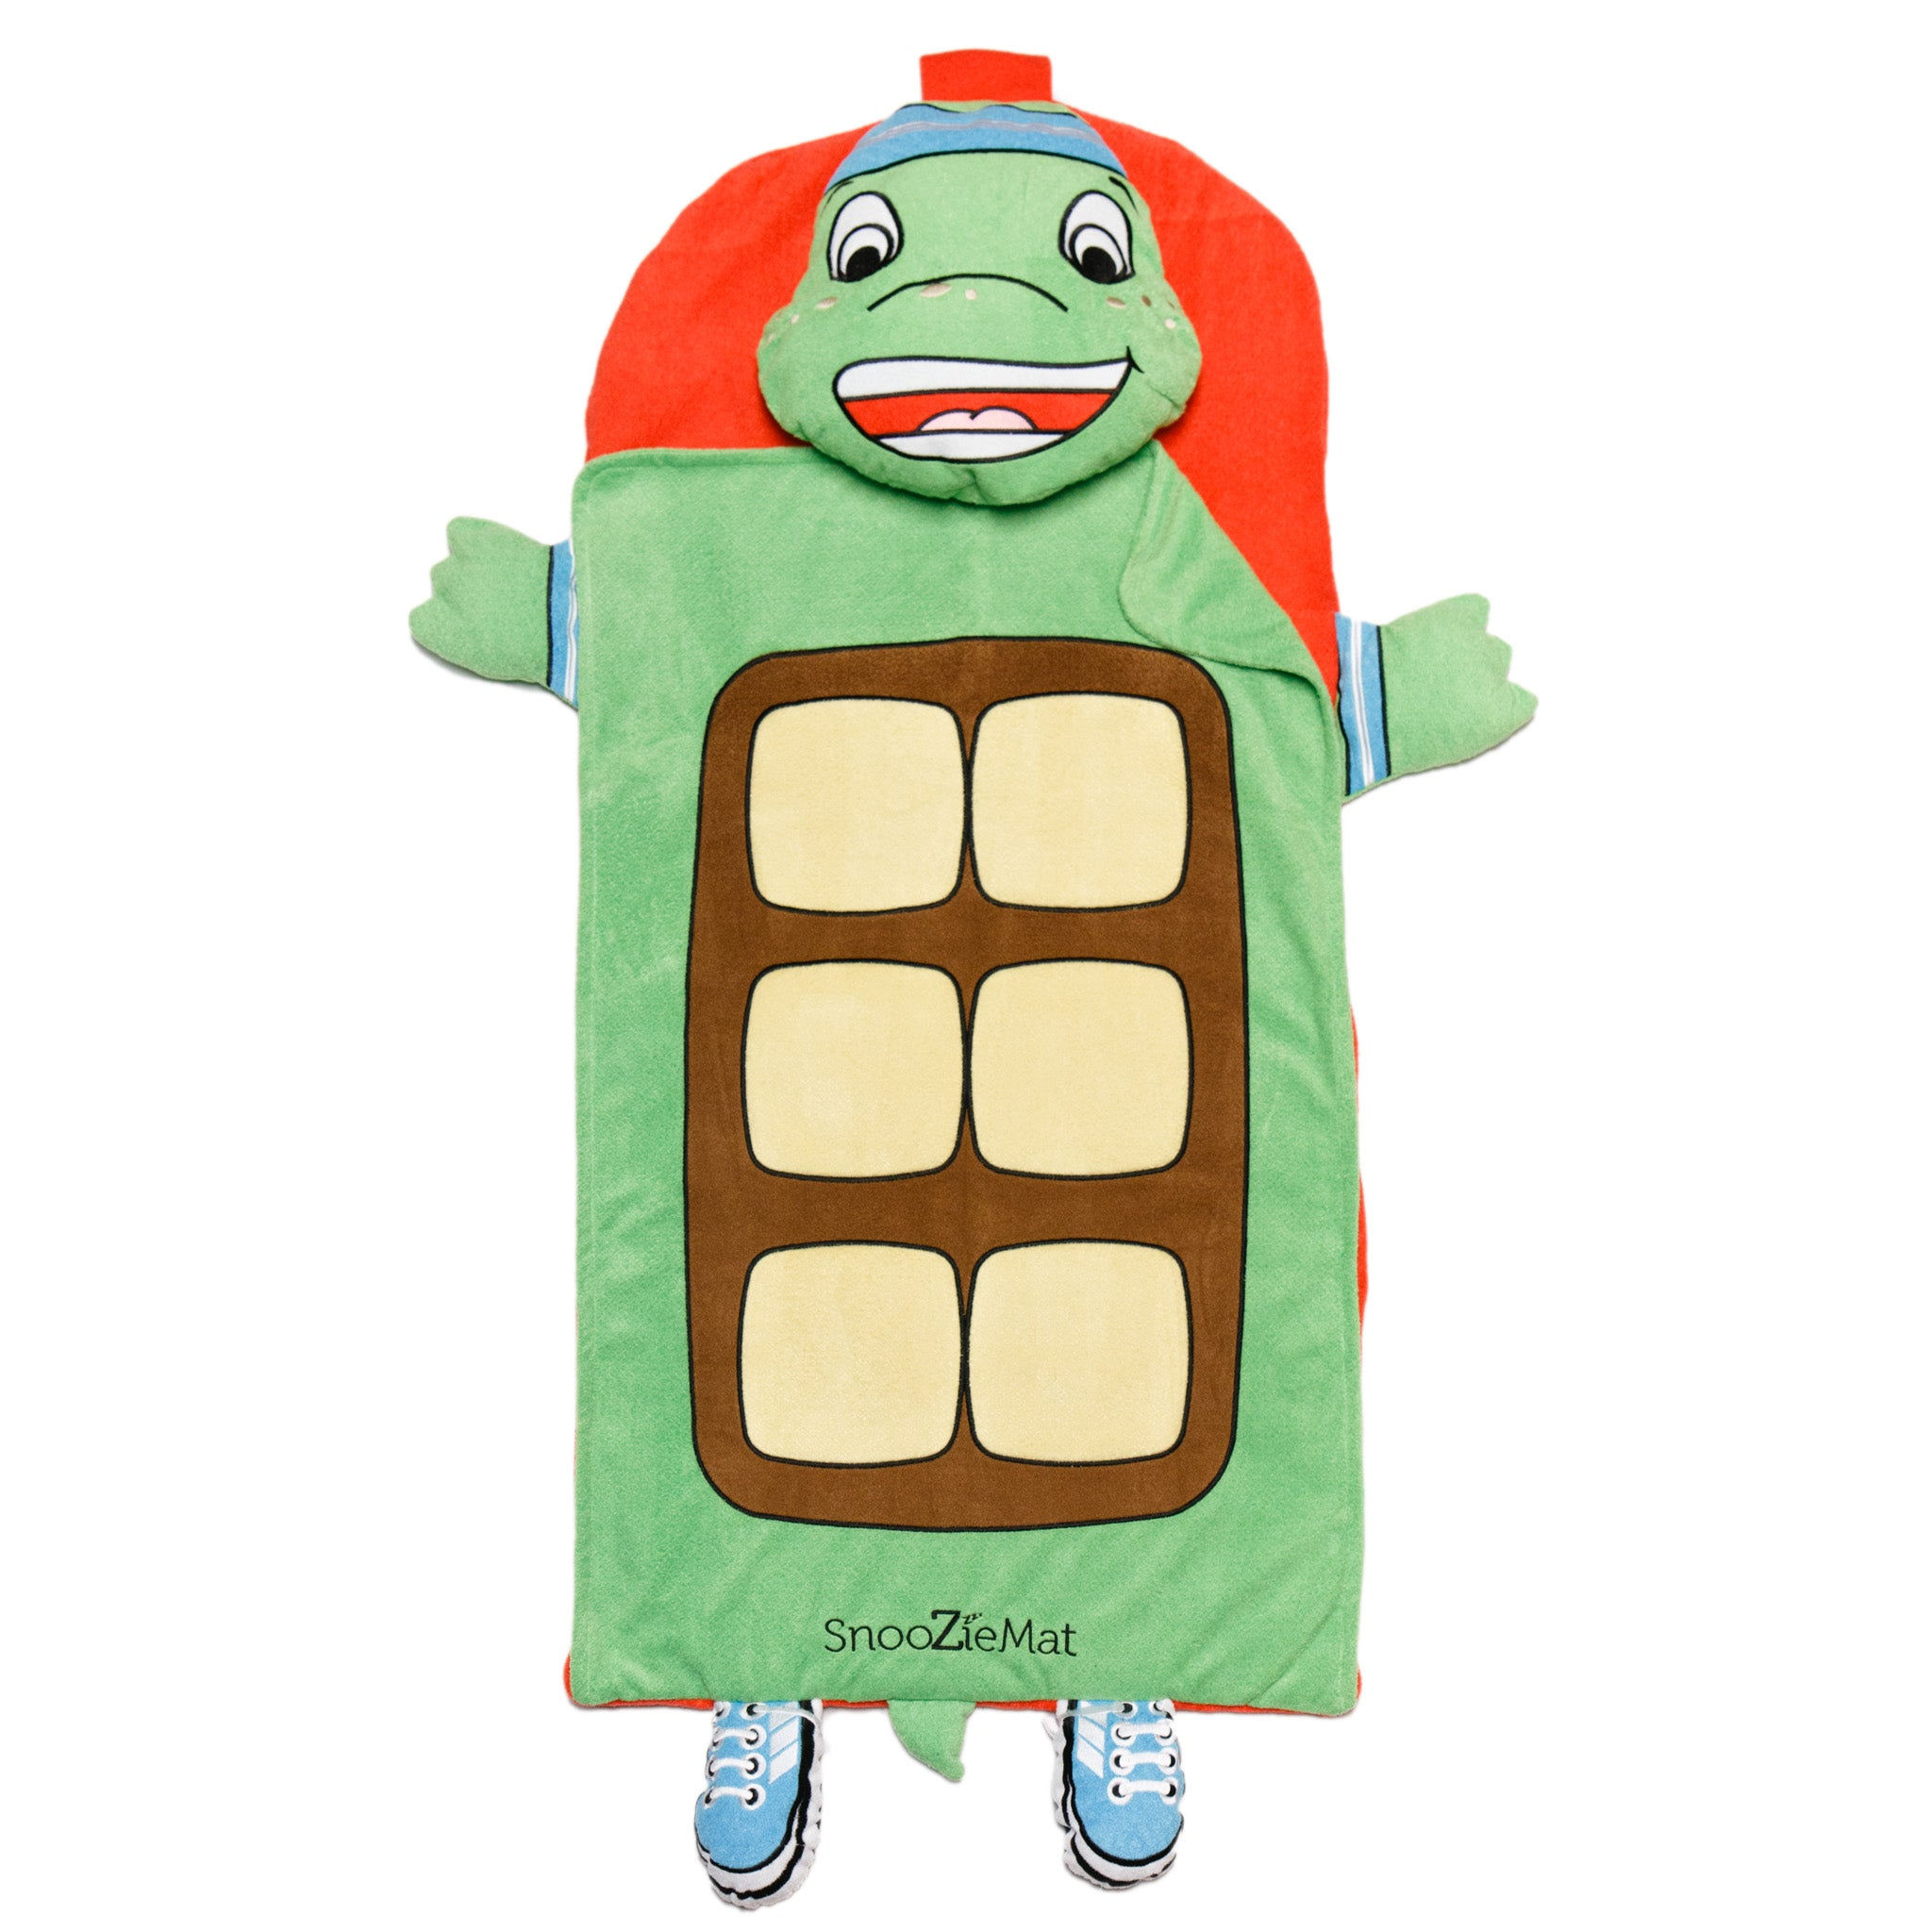 Timmy the Tortoise SnoozieMat Sleeping Bag by Sleeping Baby Say hello to Timmy the Tortoise! The SnooZieMat is a clever nap time on-the-go solution. This easy-to-pack sleeping bag is ideal for school naps, sleepovers, and blanket forts. Once your child is done snoozing, roll it up and keep moving.   48 x24  mat rolls into a 12 x16  backpack(Bottom mat is roughly 1.5 inches thick) Fabric: 100% poly Machine washable  The SnooZieMat is machine washable, for best results remove the pillow insert before washing.   - Timmy the Tortoise SnoozieMat Sleeping Bag by Sleeping Baby